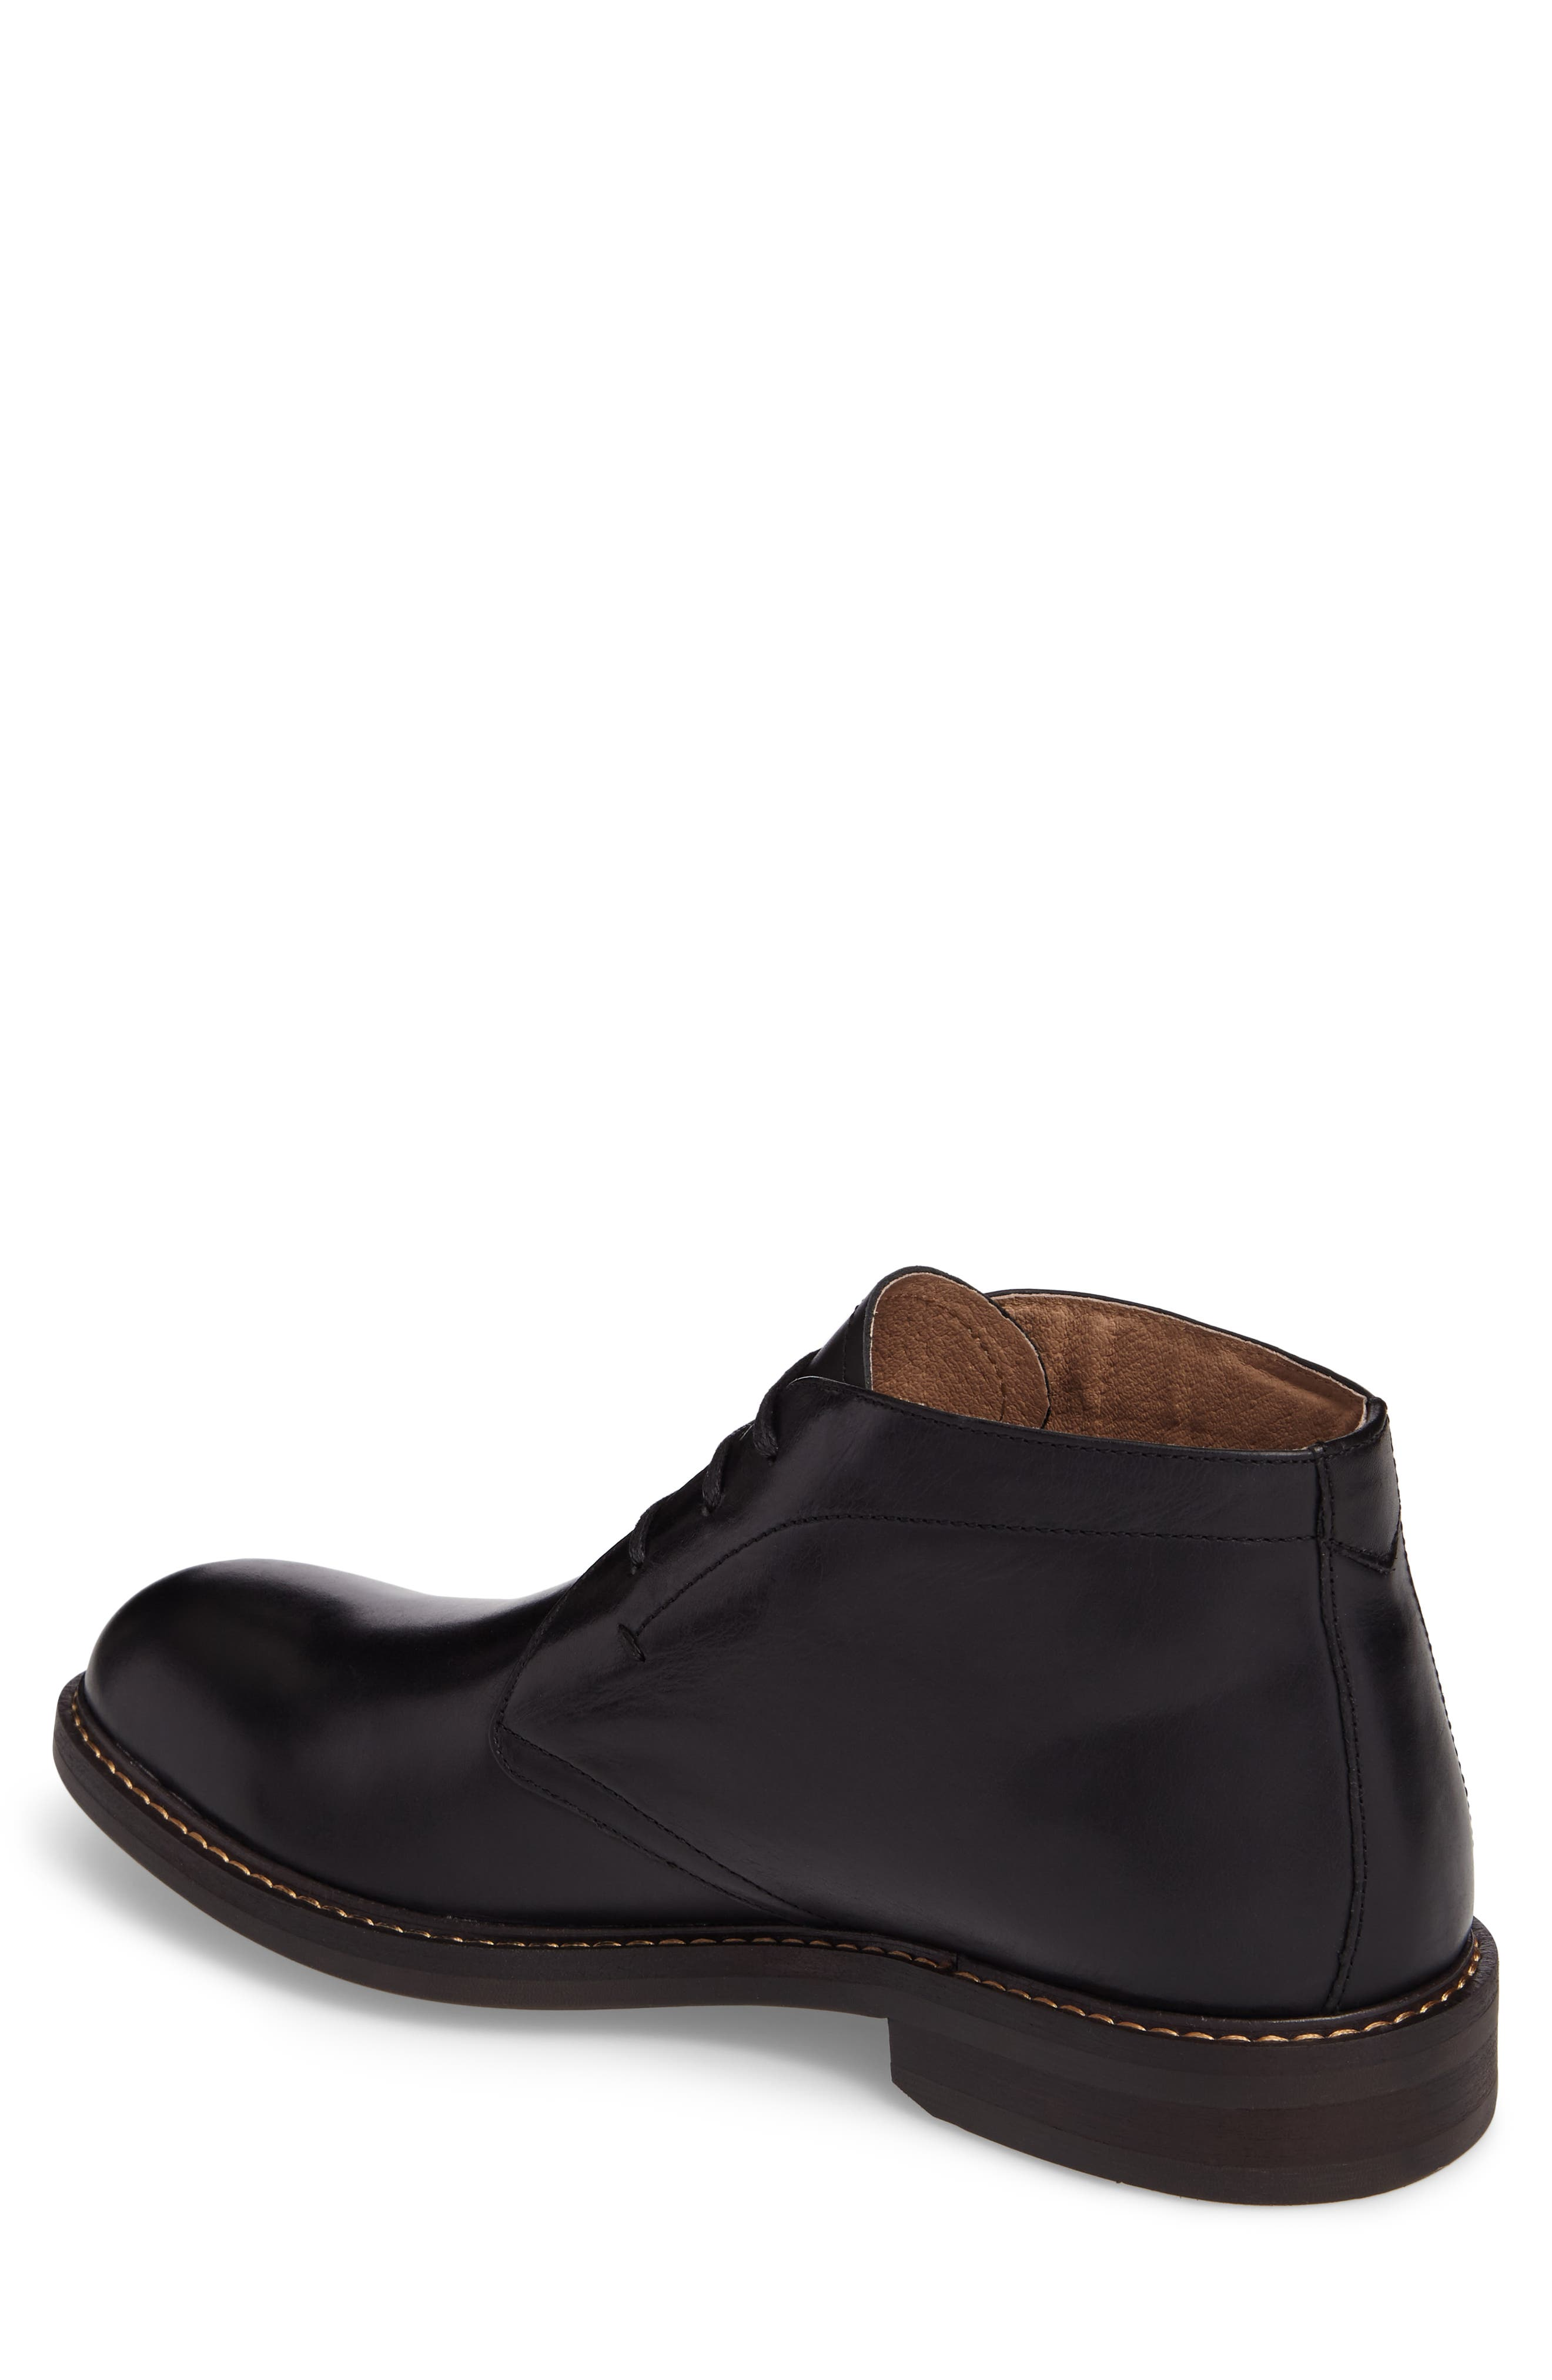 Barrett Chukka Boot,                             Alternate thumbnail 2, color,                             001